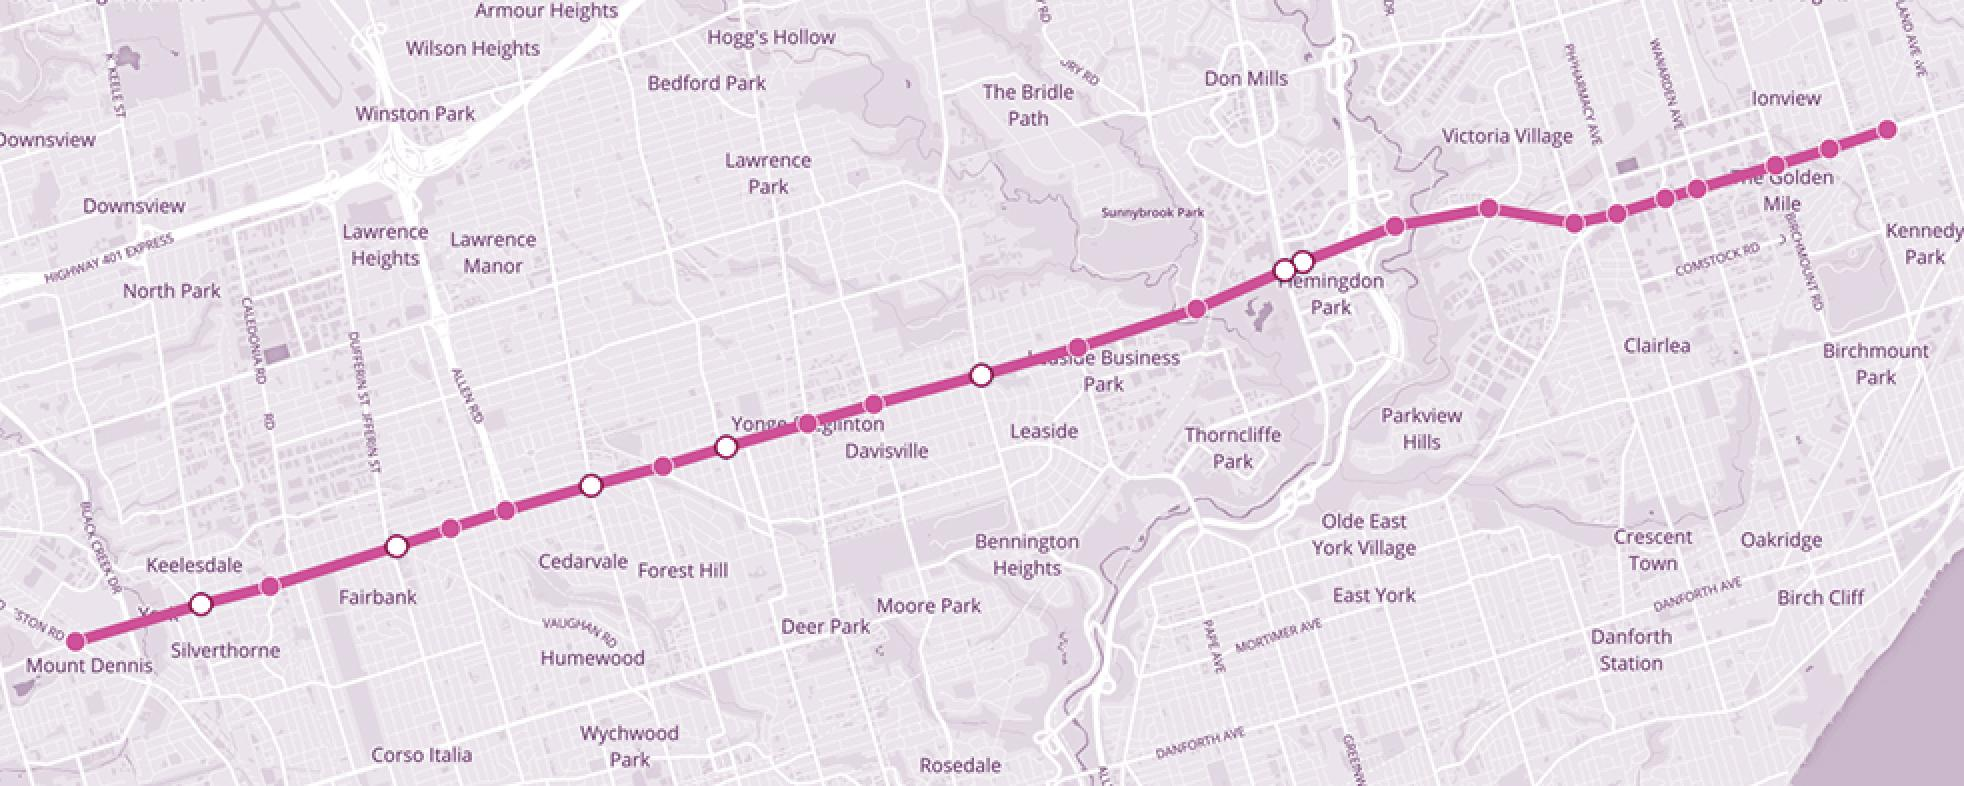 Eglinton Crosstown Map Eglinton Crosstown Line Station and Stop Names | Metrolinx Engage